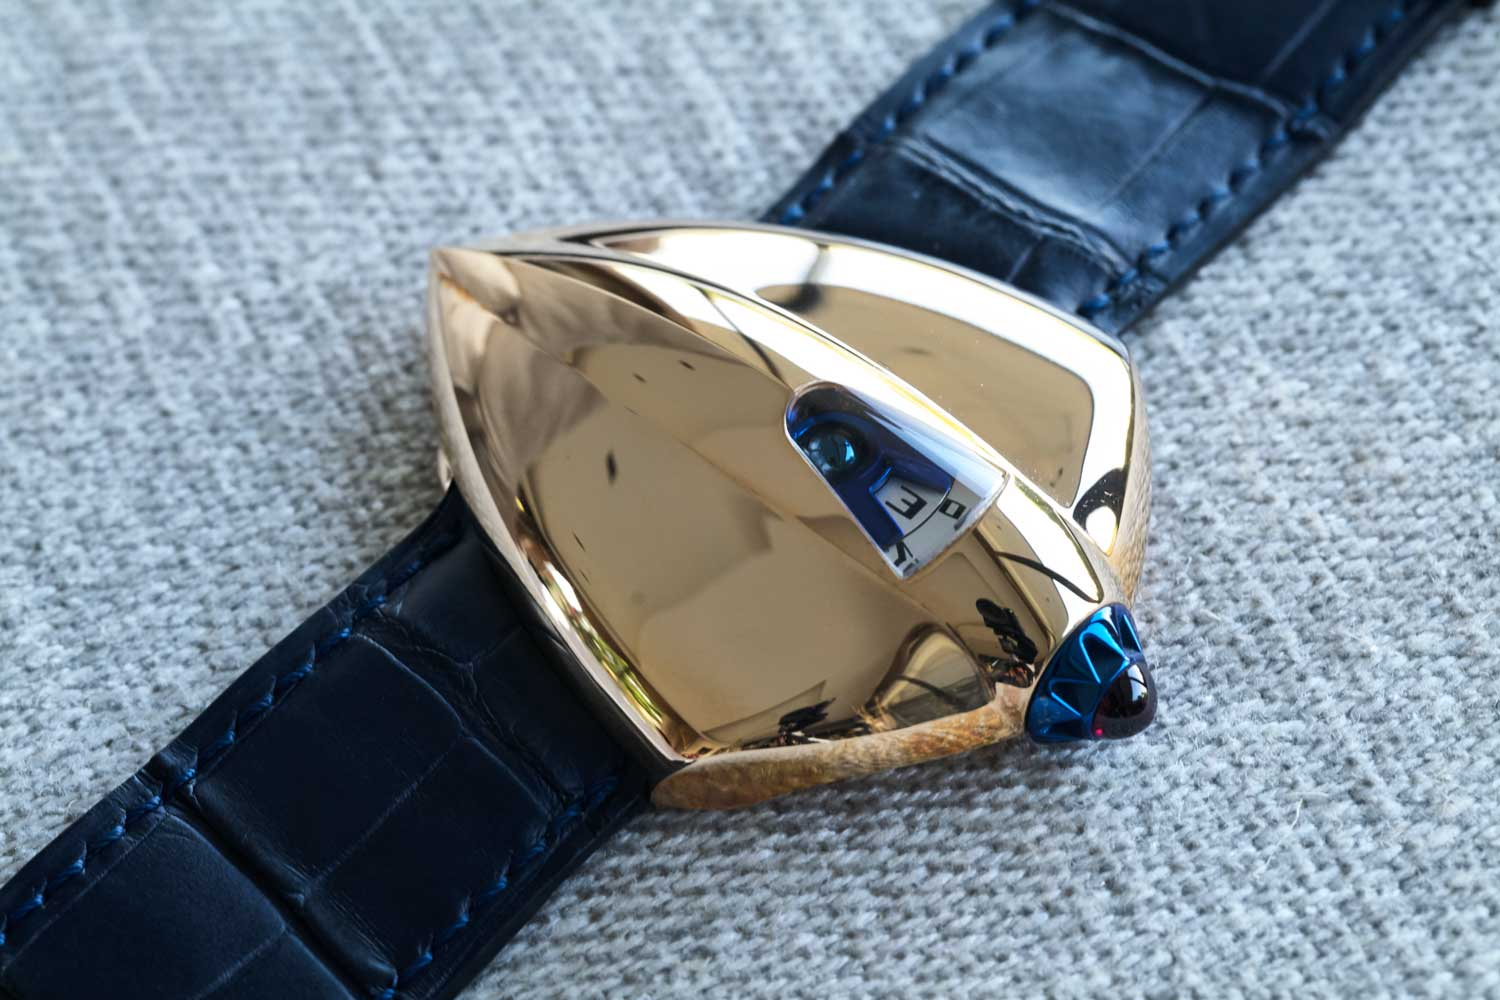 Santa Laura's unique De Bethune Dream Watch 5 (©Revolution)